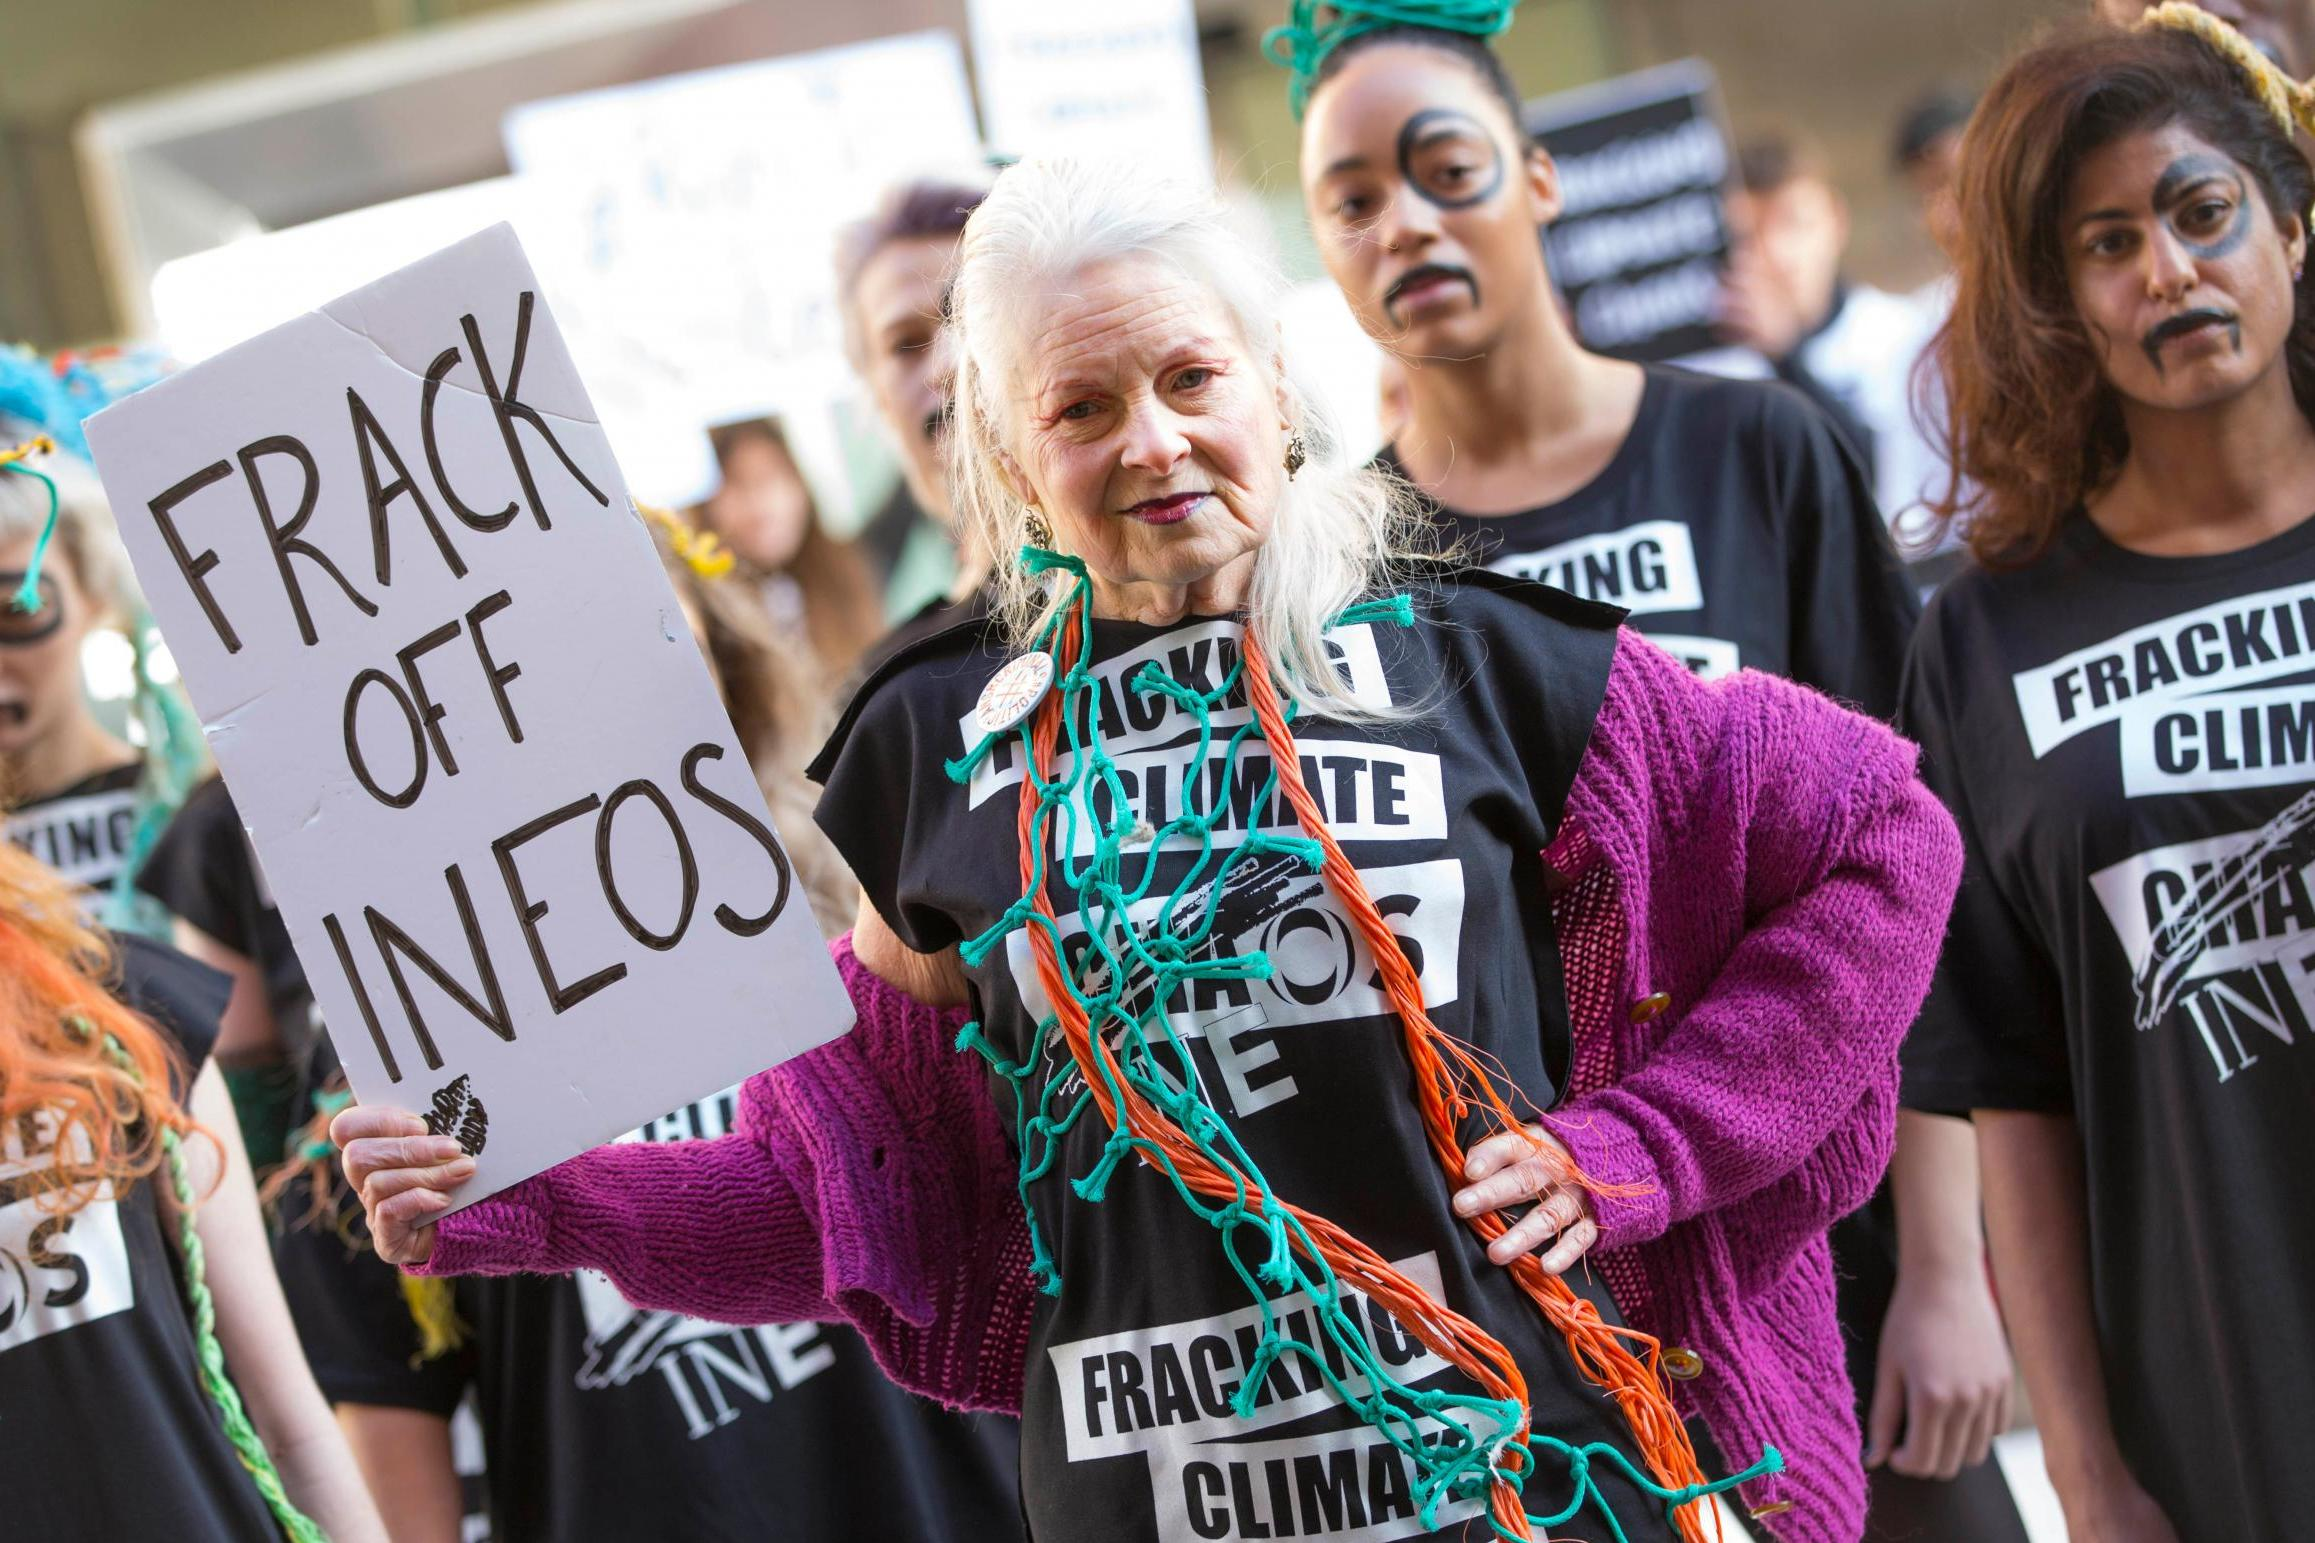 Vivienne Westwood stages anti-fracking protest at London Fashion Week